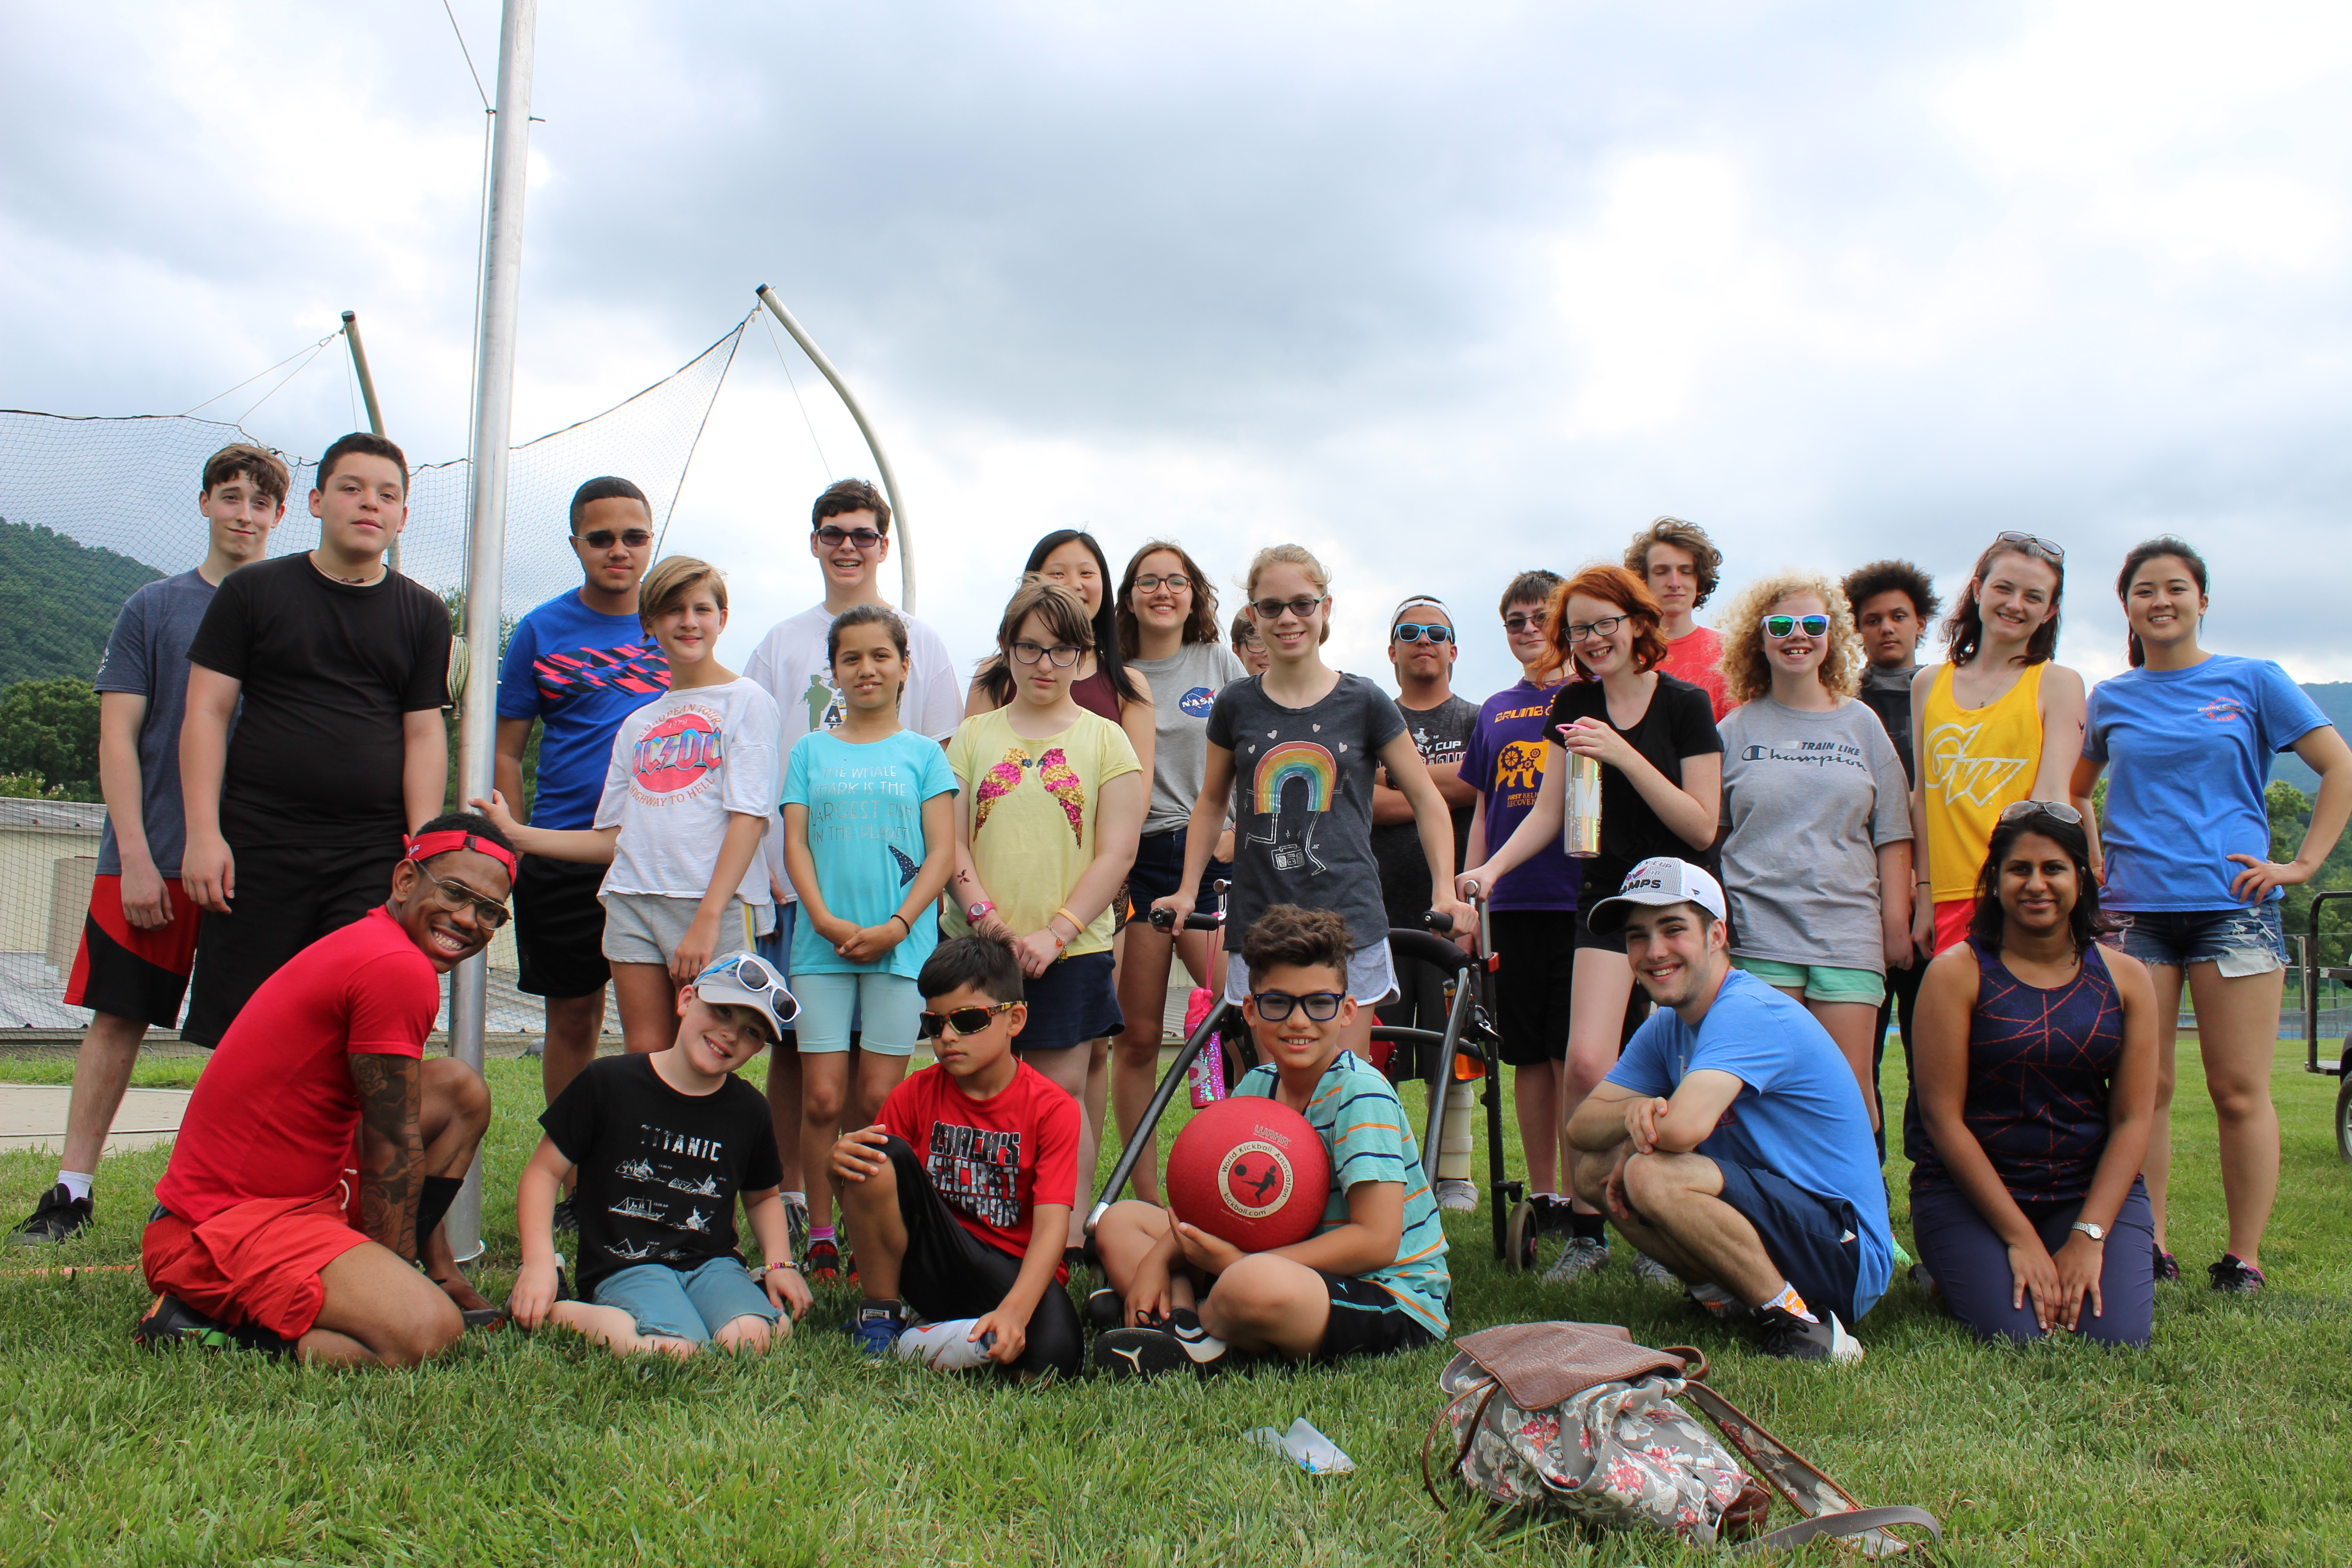 Campers and counselors pose for a photo following a game of kickball.